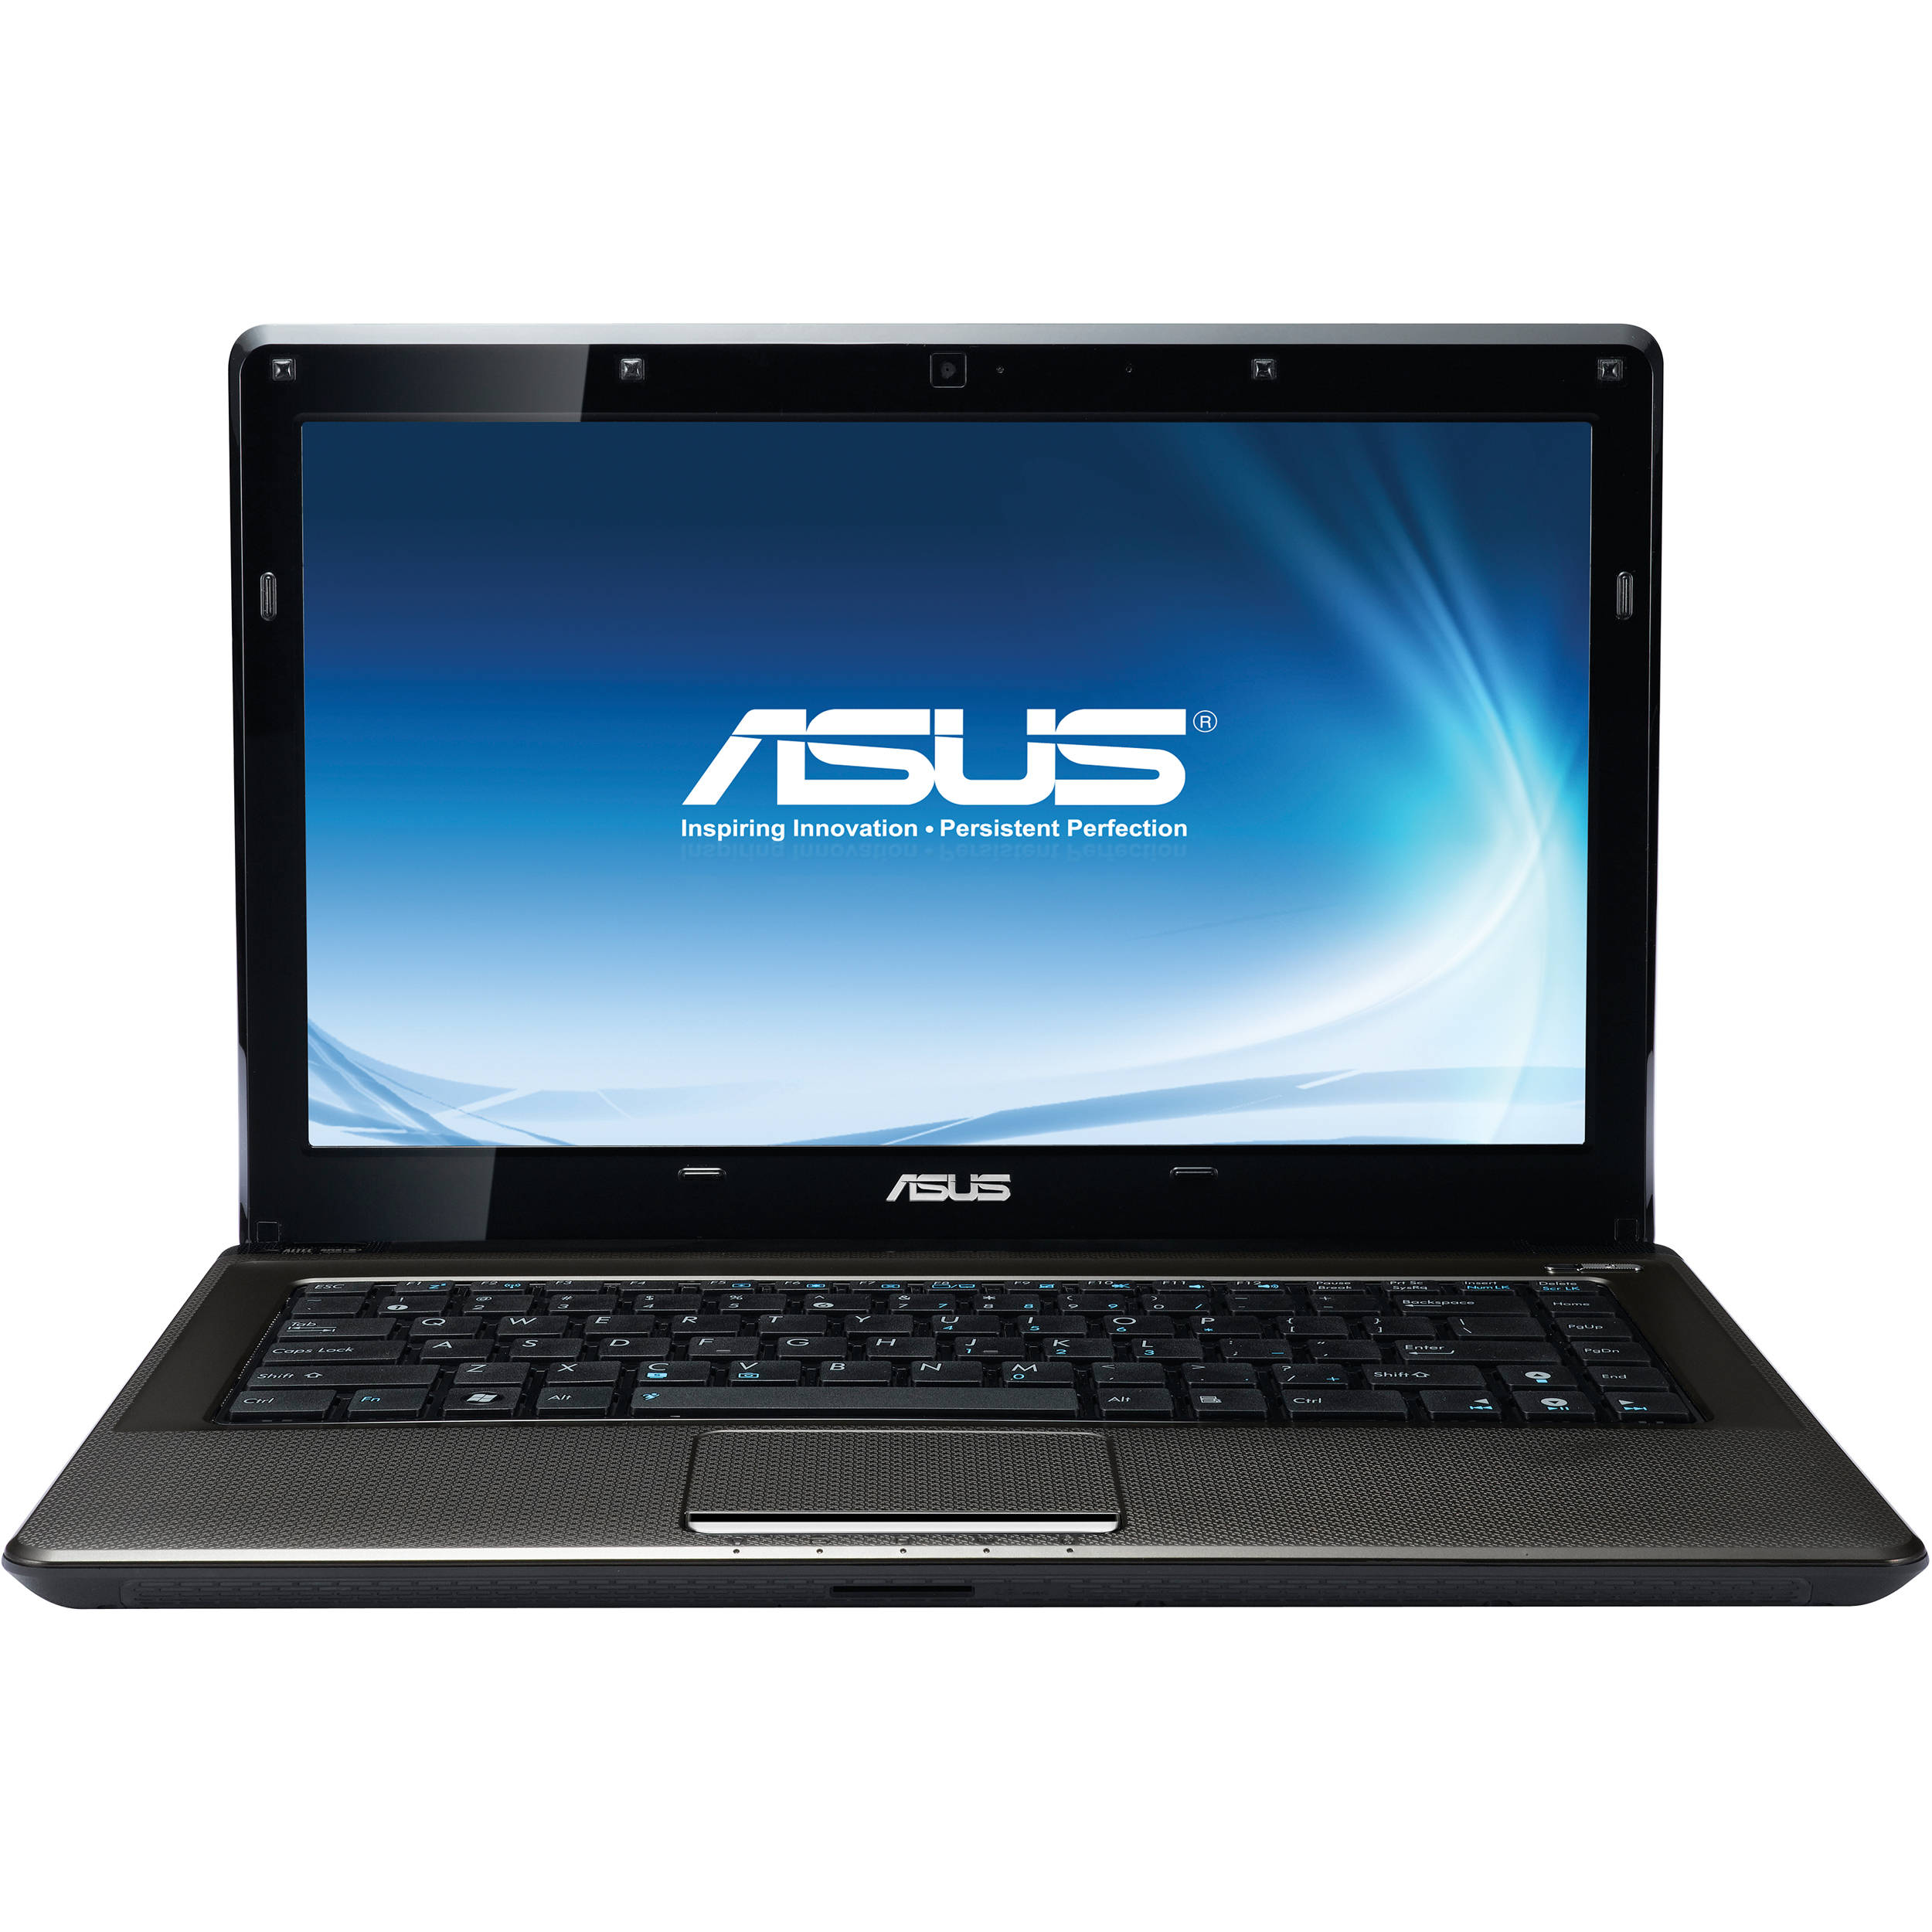 Asus K42JC Notebook Intel Turbo Boost Monitor Vista